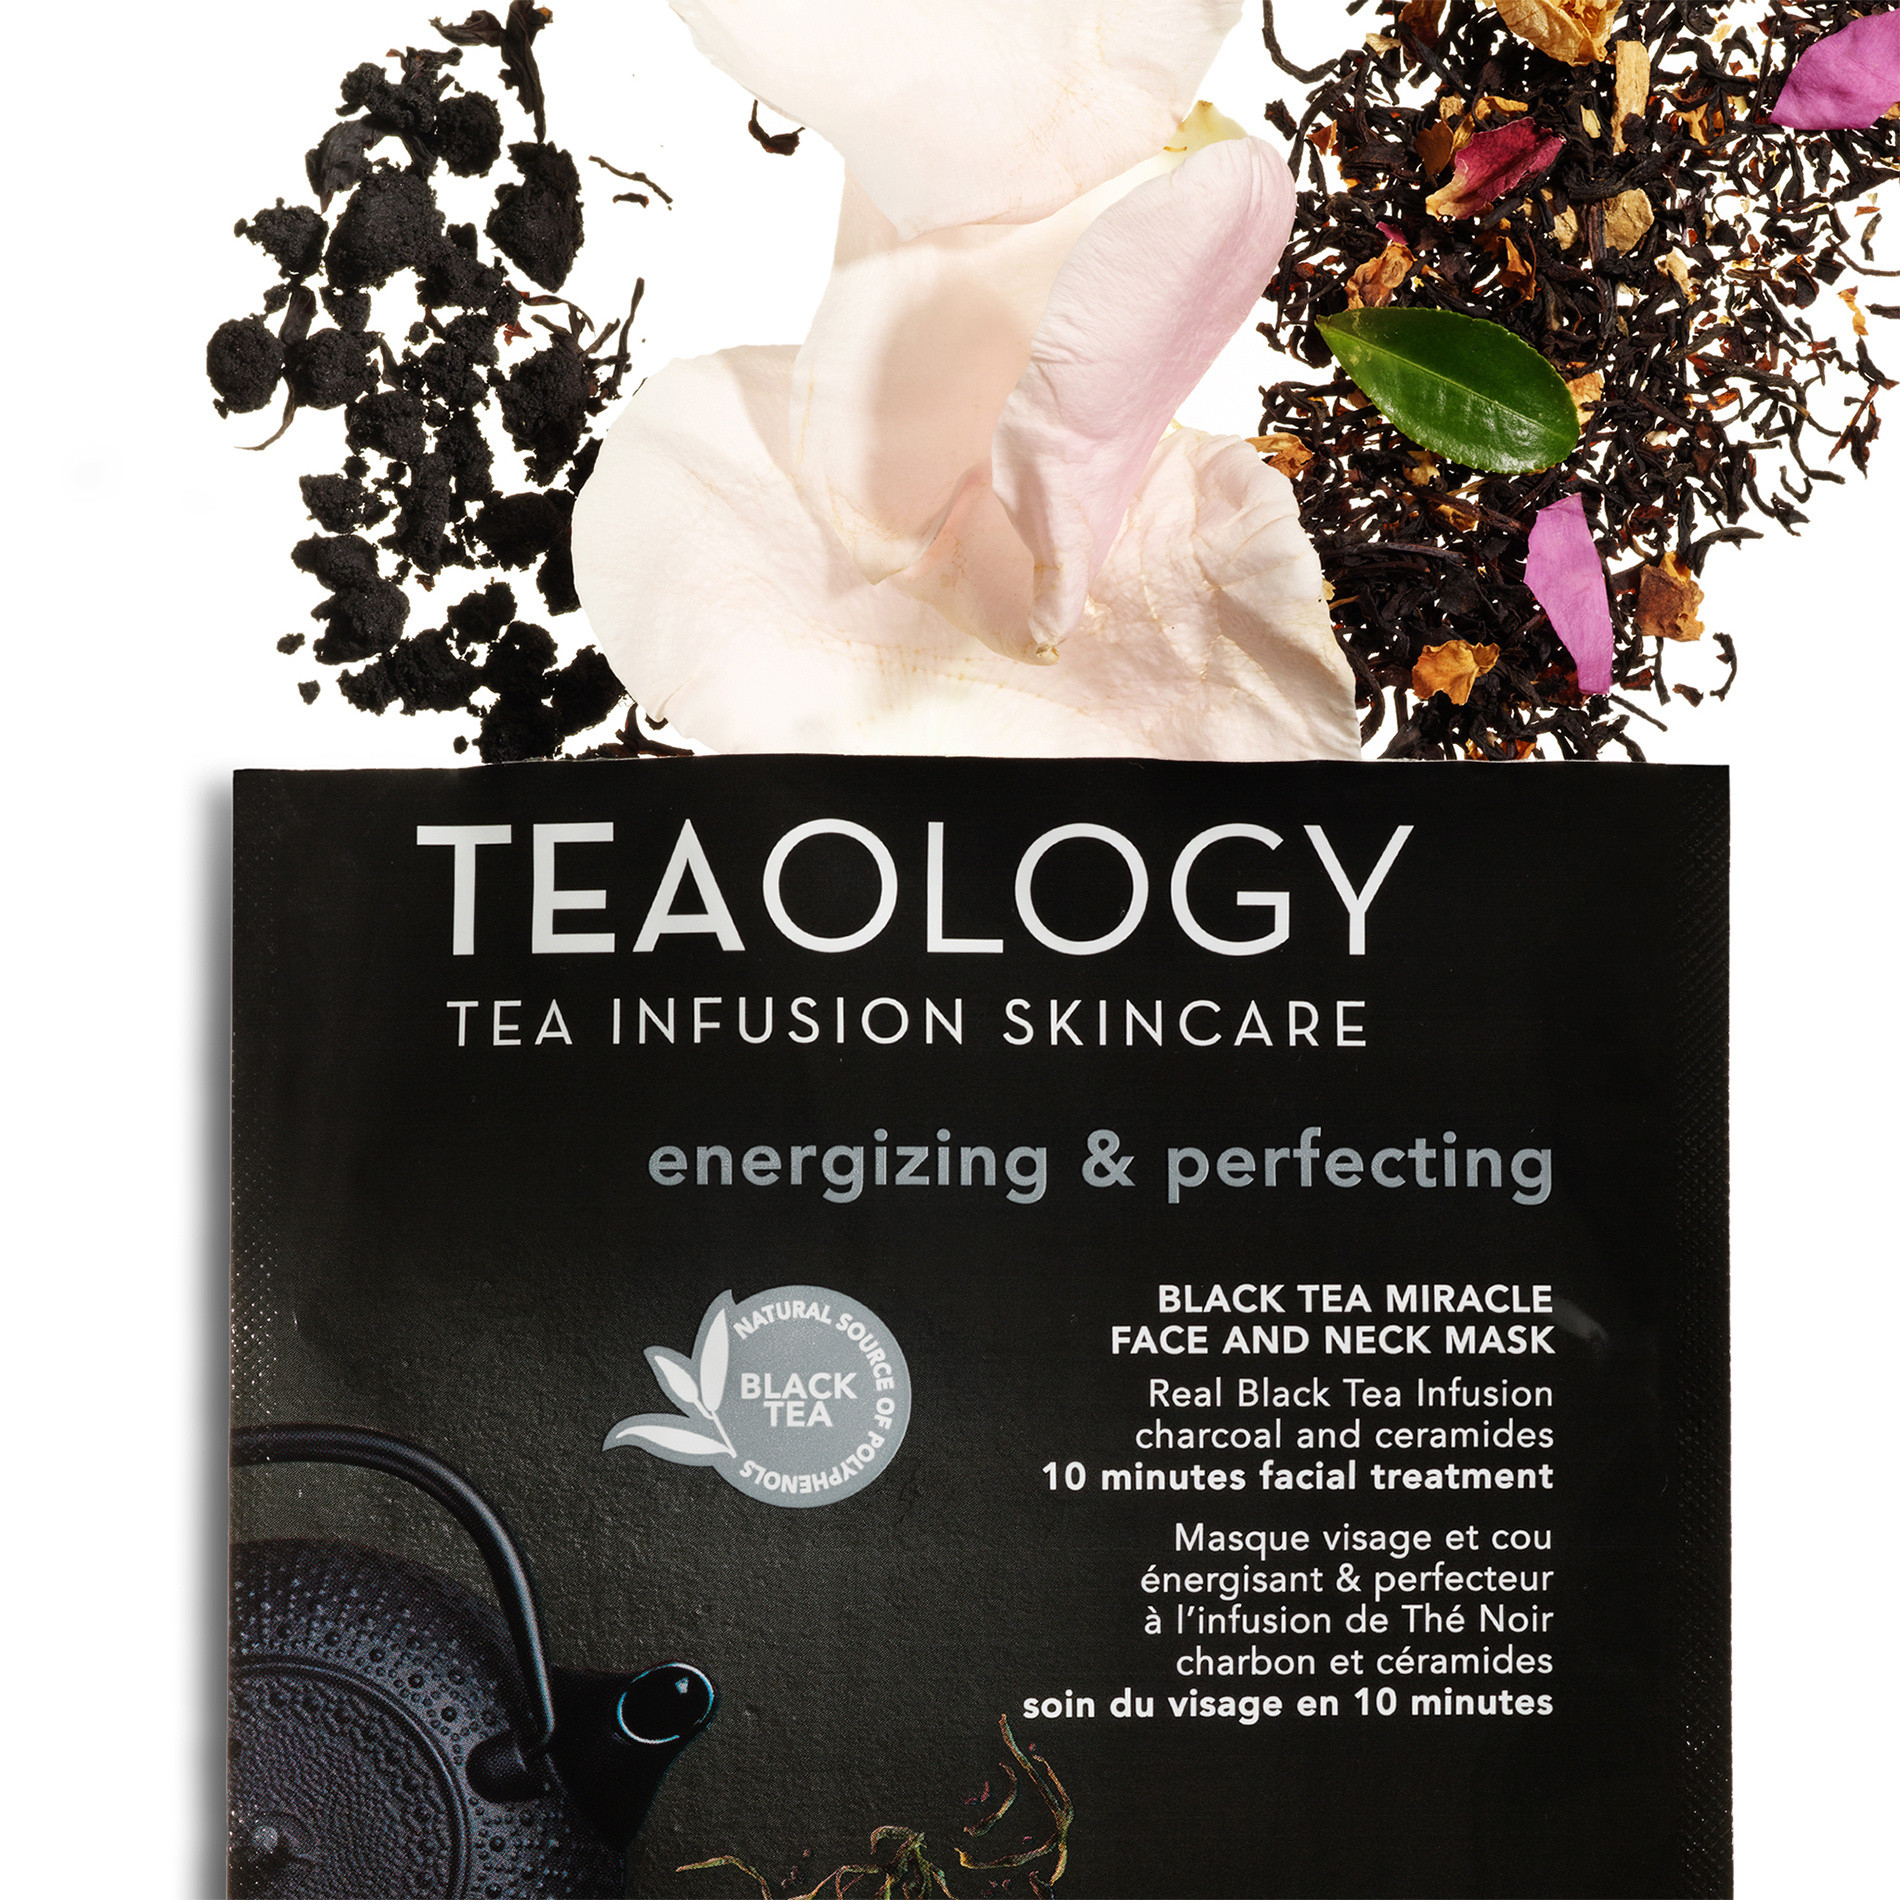 Teaology Black Tea Miracle Face and Neck Mask Energizzante e Perfezionatrice 30 ml, Nero, large image number 2